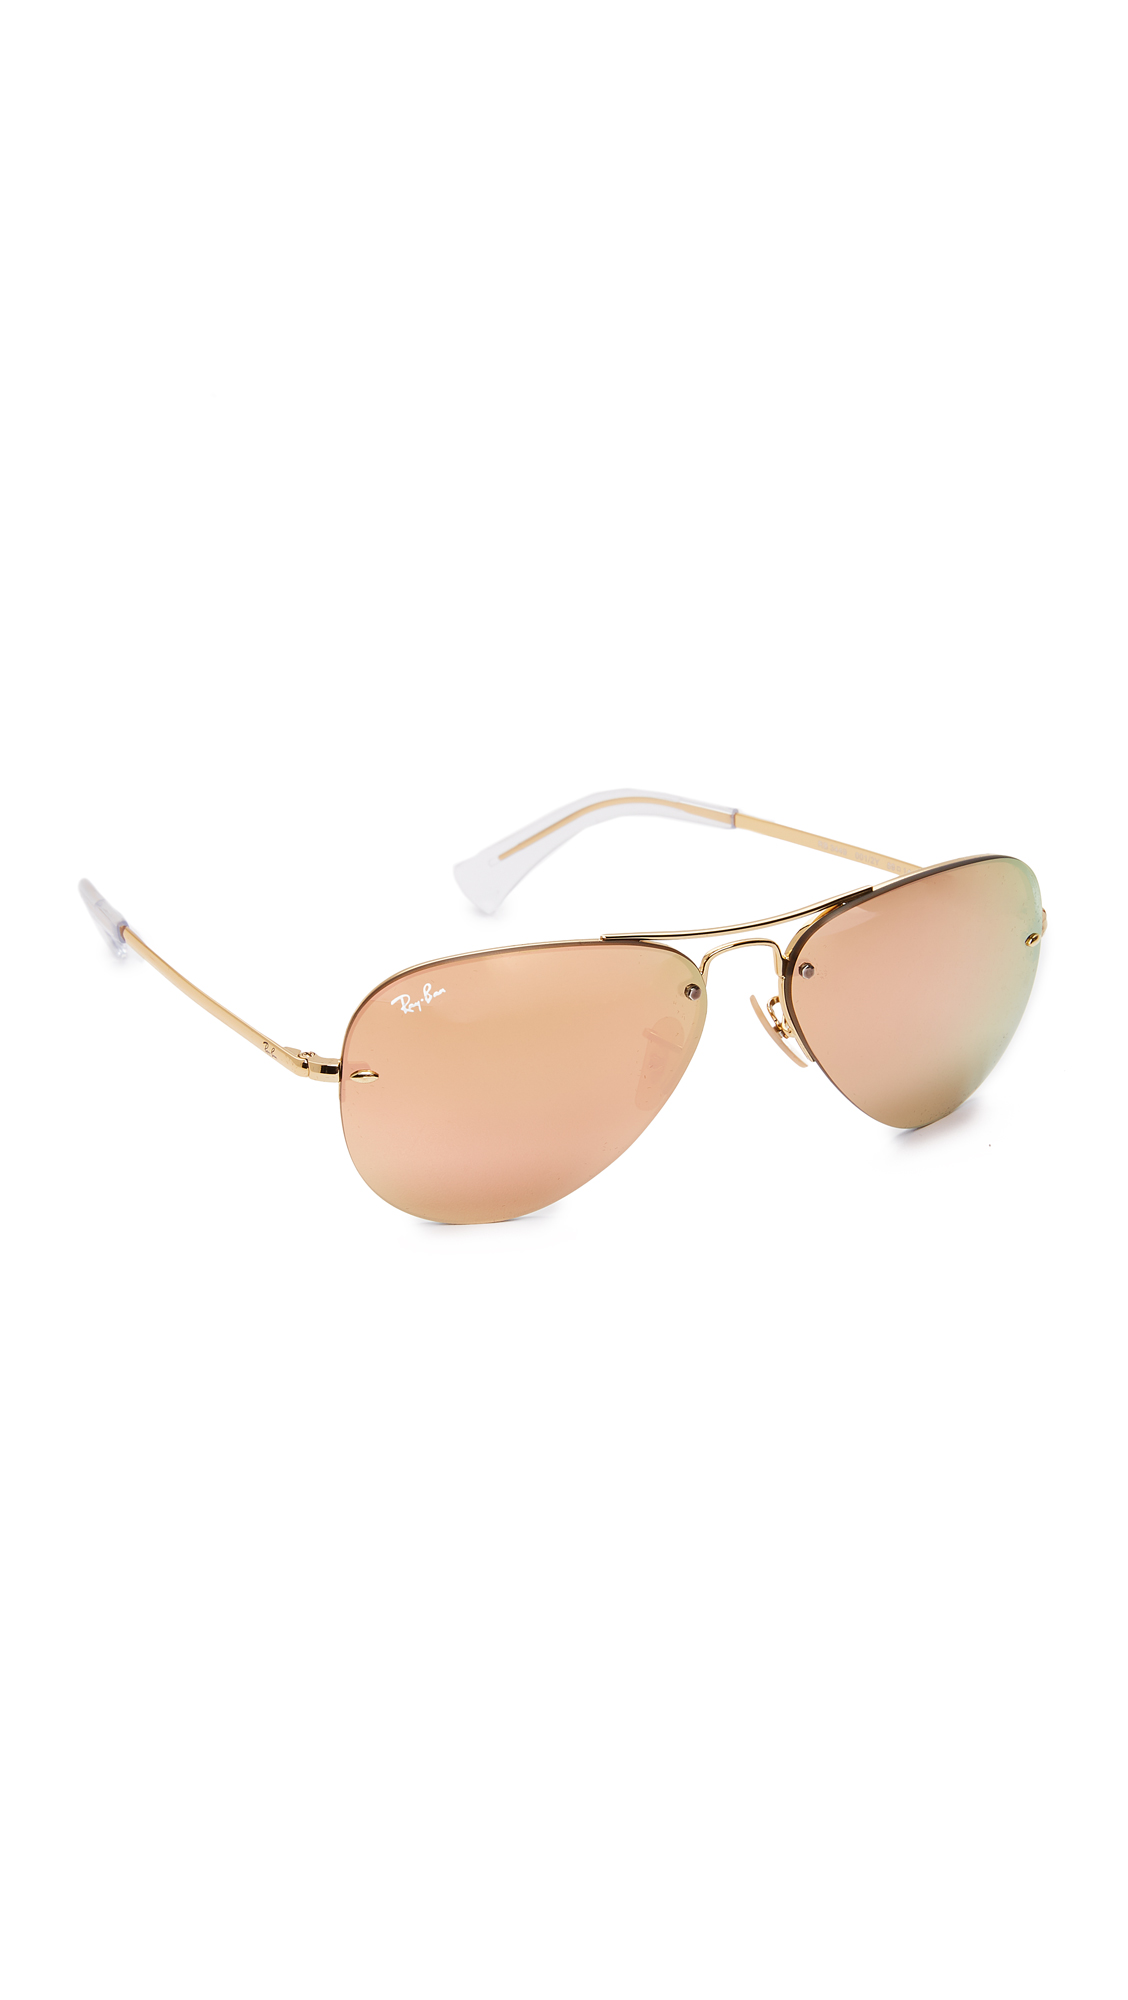 502478b211666 Ray-Ban Rimless Aviator Sunglasses   SHOPBOP